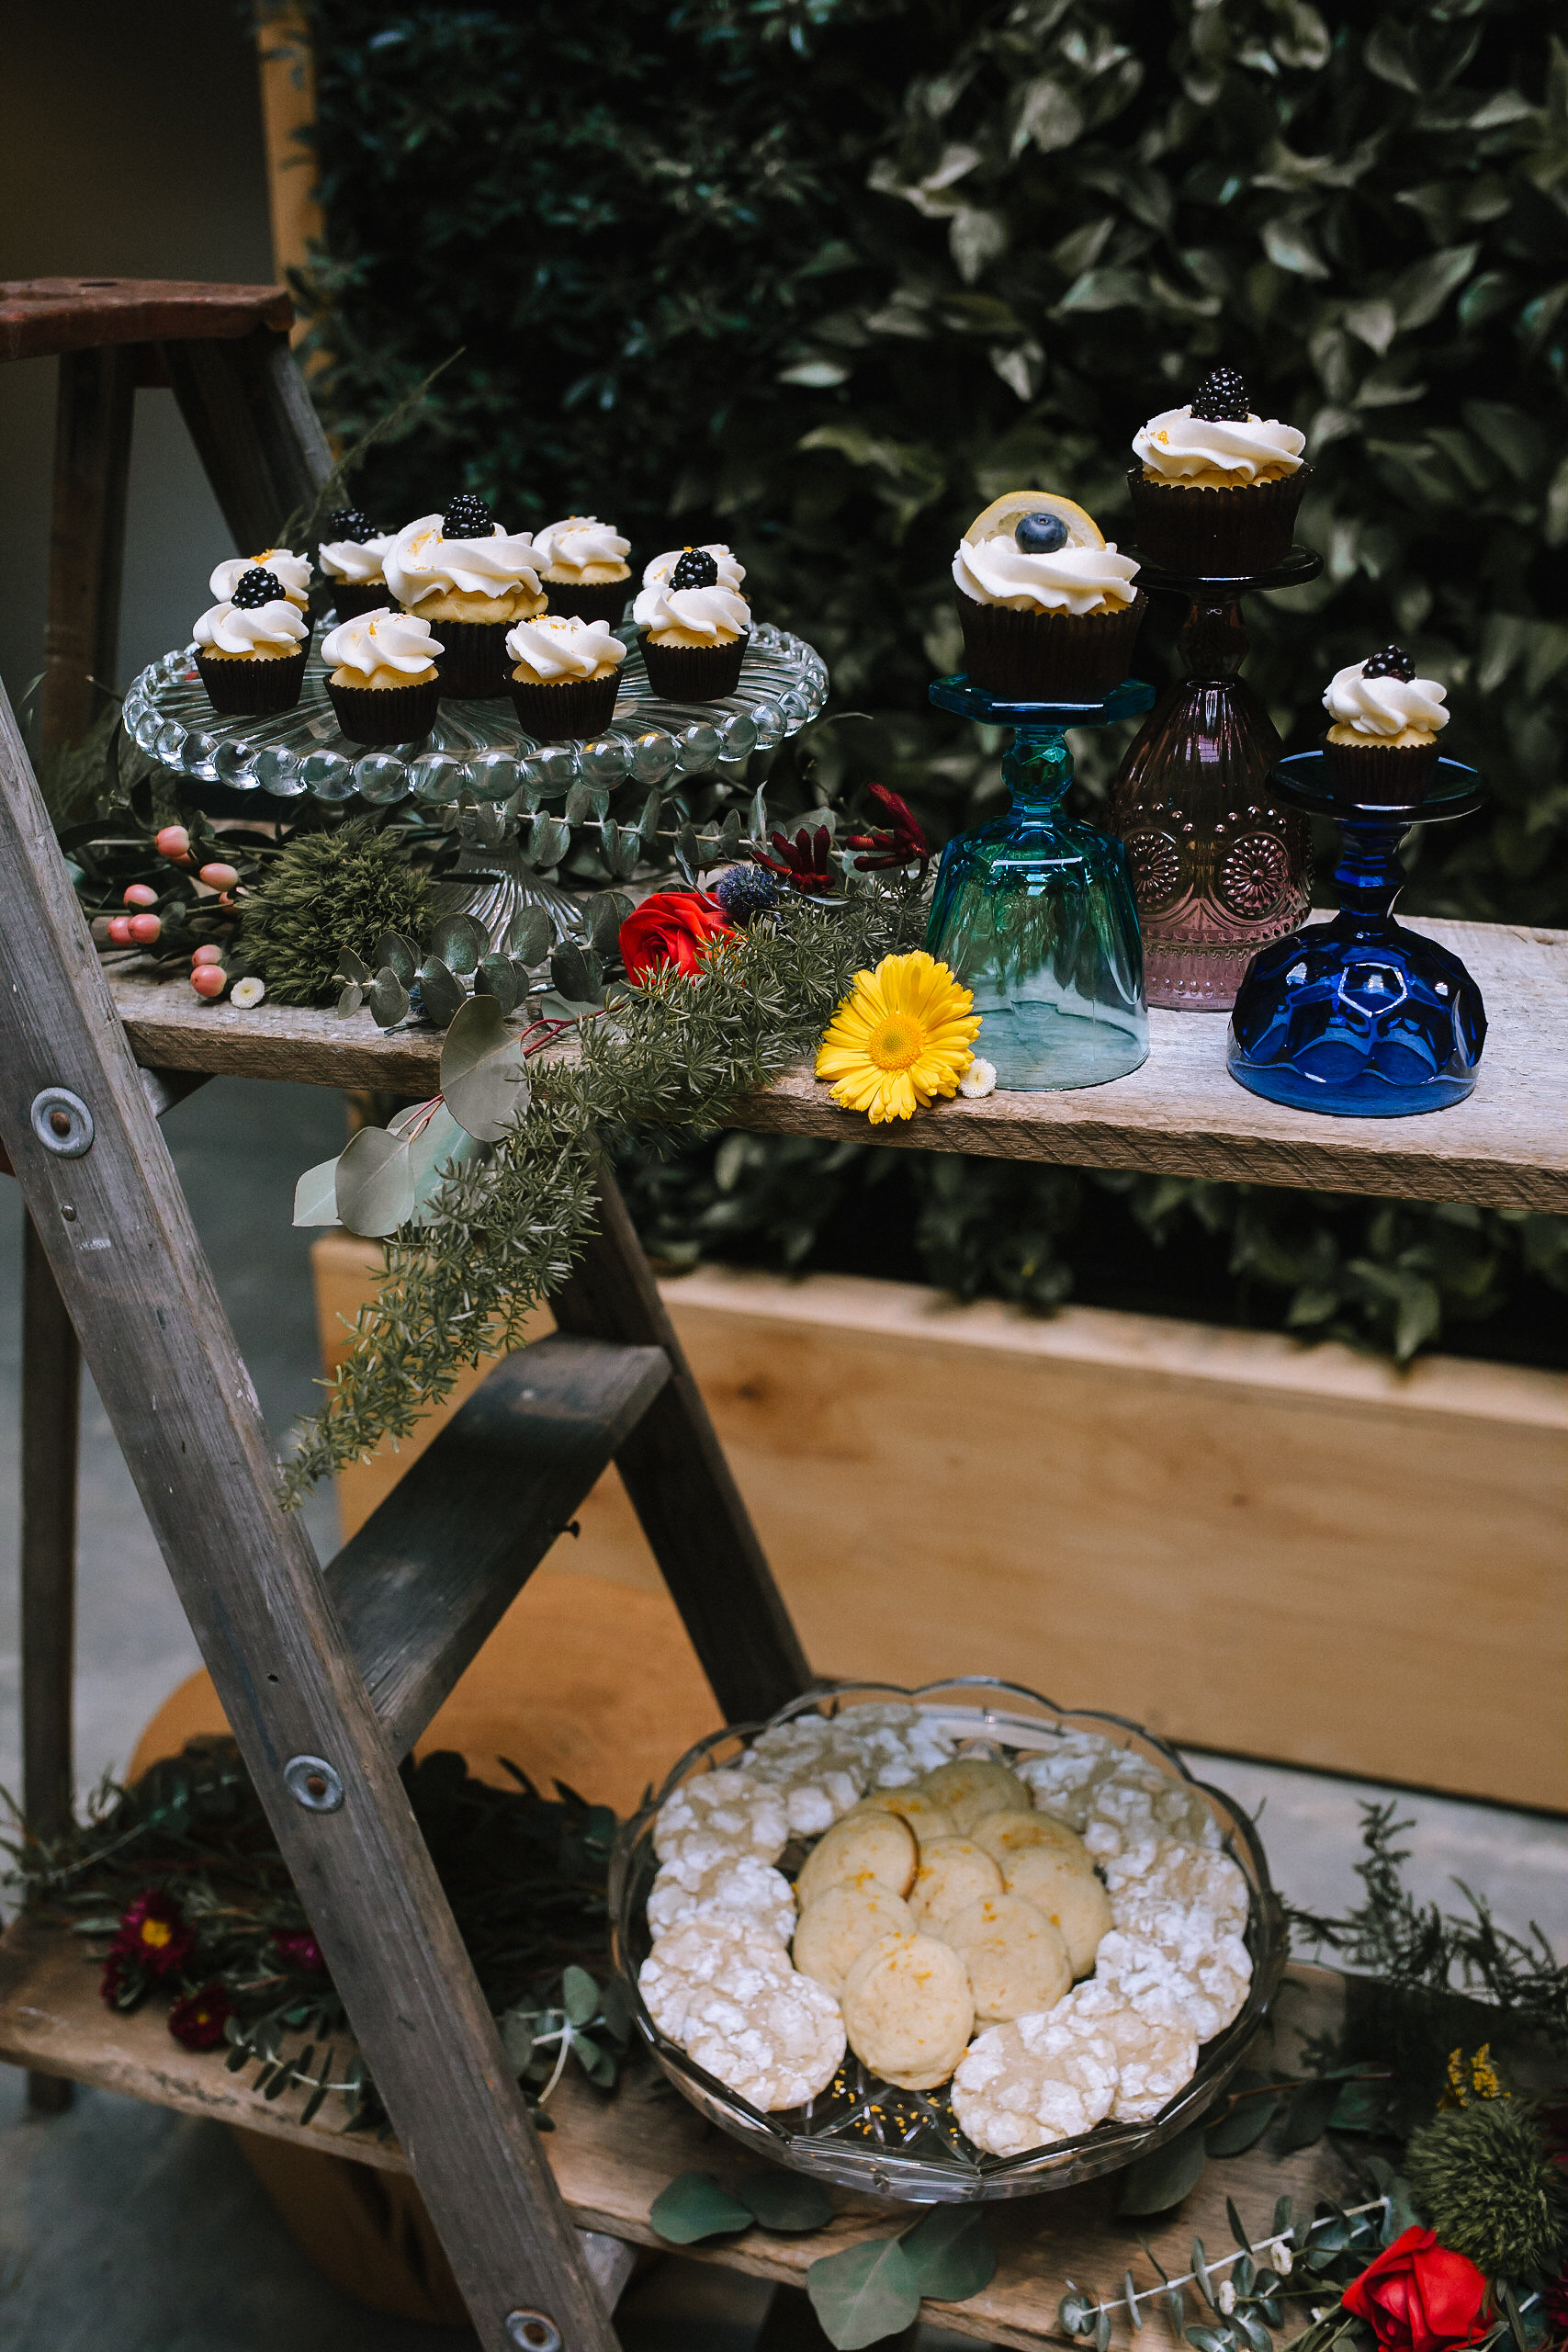 Dessert table from Mixed with Love Cake & Cookie Co set up by Vintage Alley Rentals & Exhale Events.